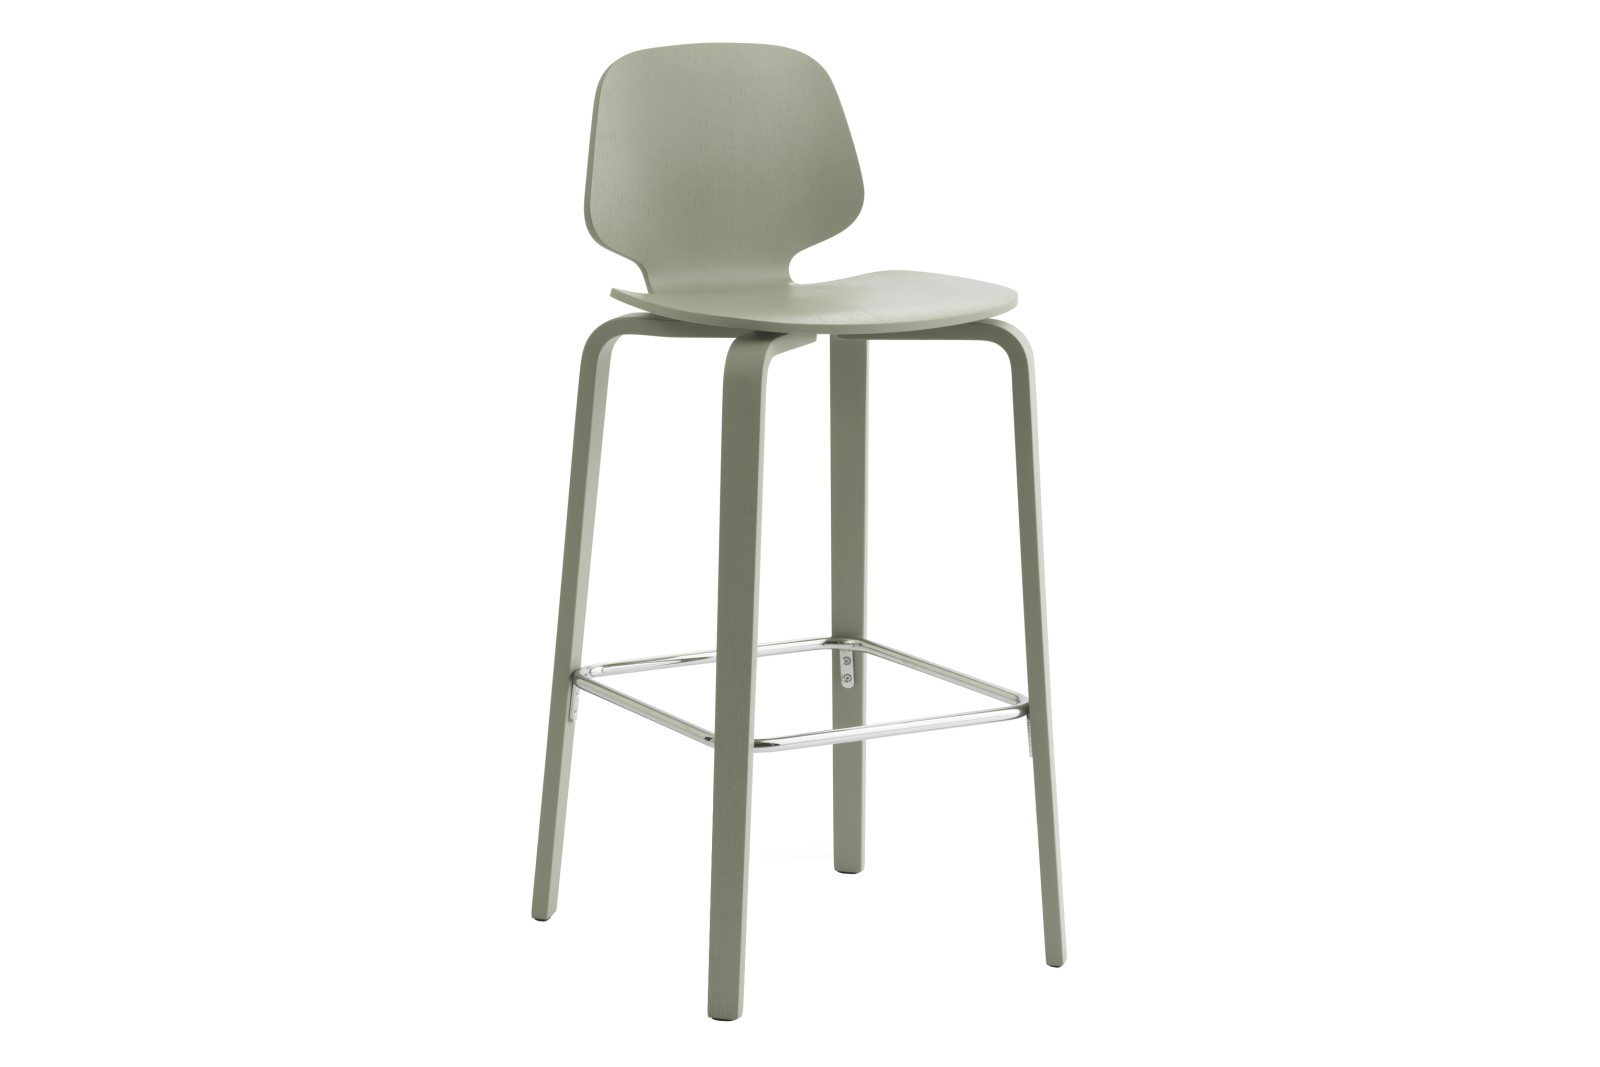 My Chair - Barstool, Un-Upholstered - Veneer Legs Moss Painted Ash, 75